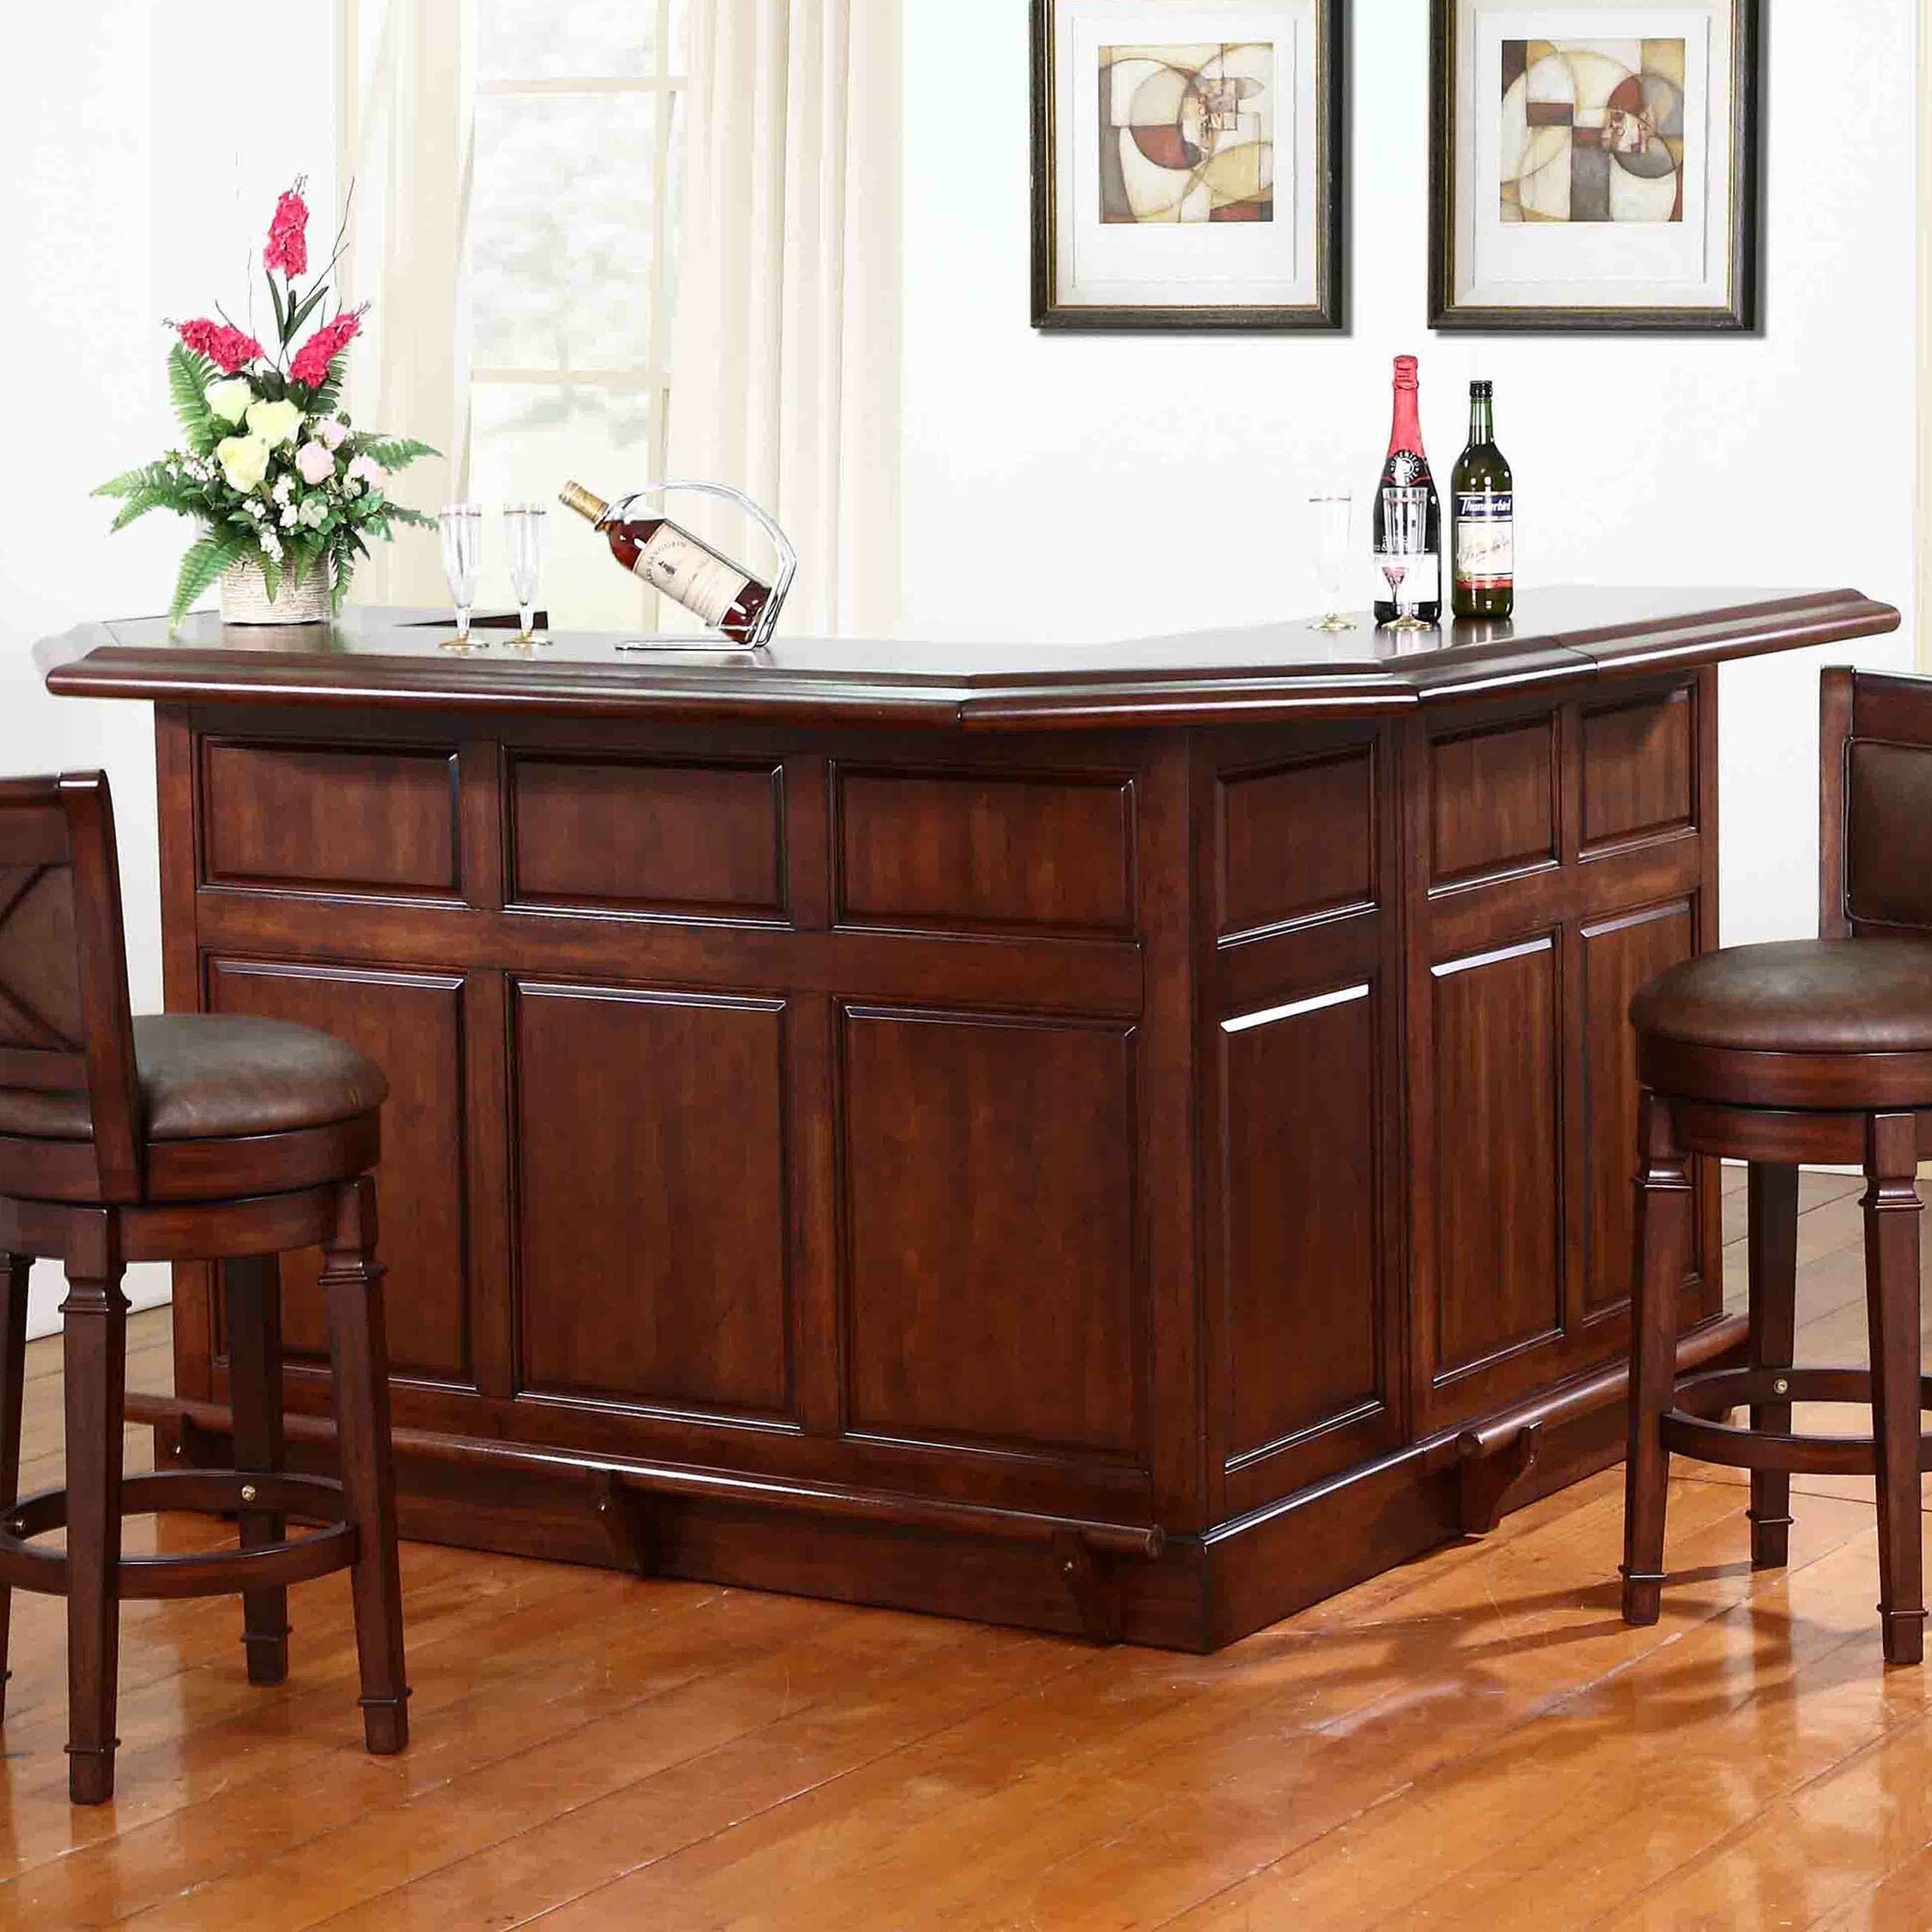 Eci furniture belvedere home bar ebay for Bar at home furniture